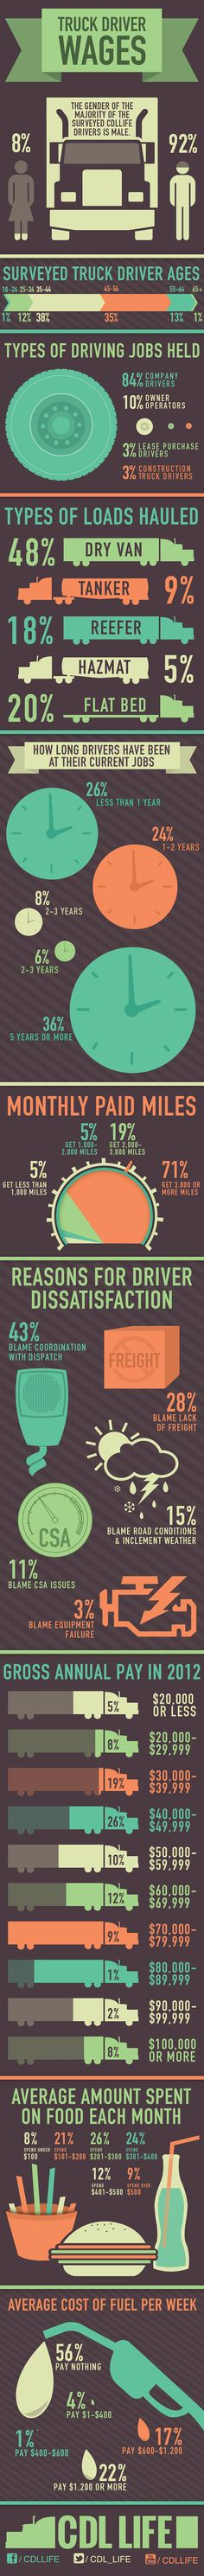 CDLLife Truck Driver Wages | Infographic